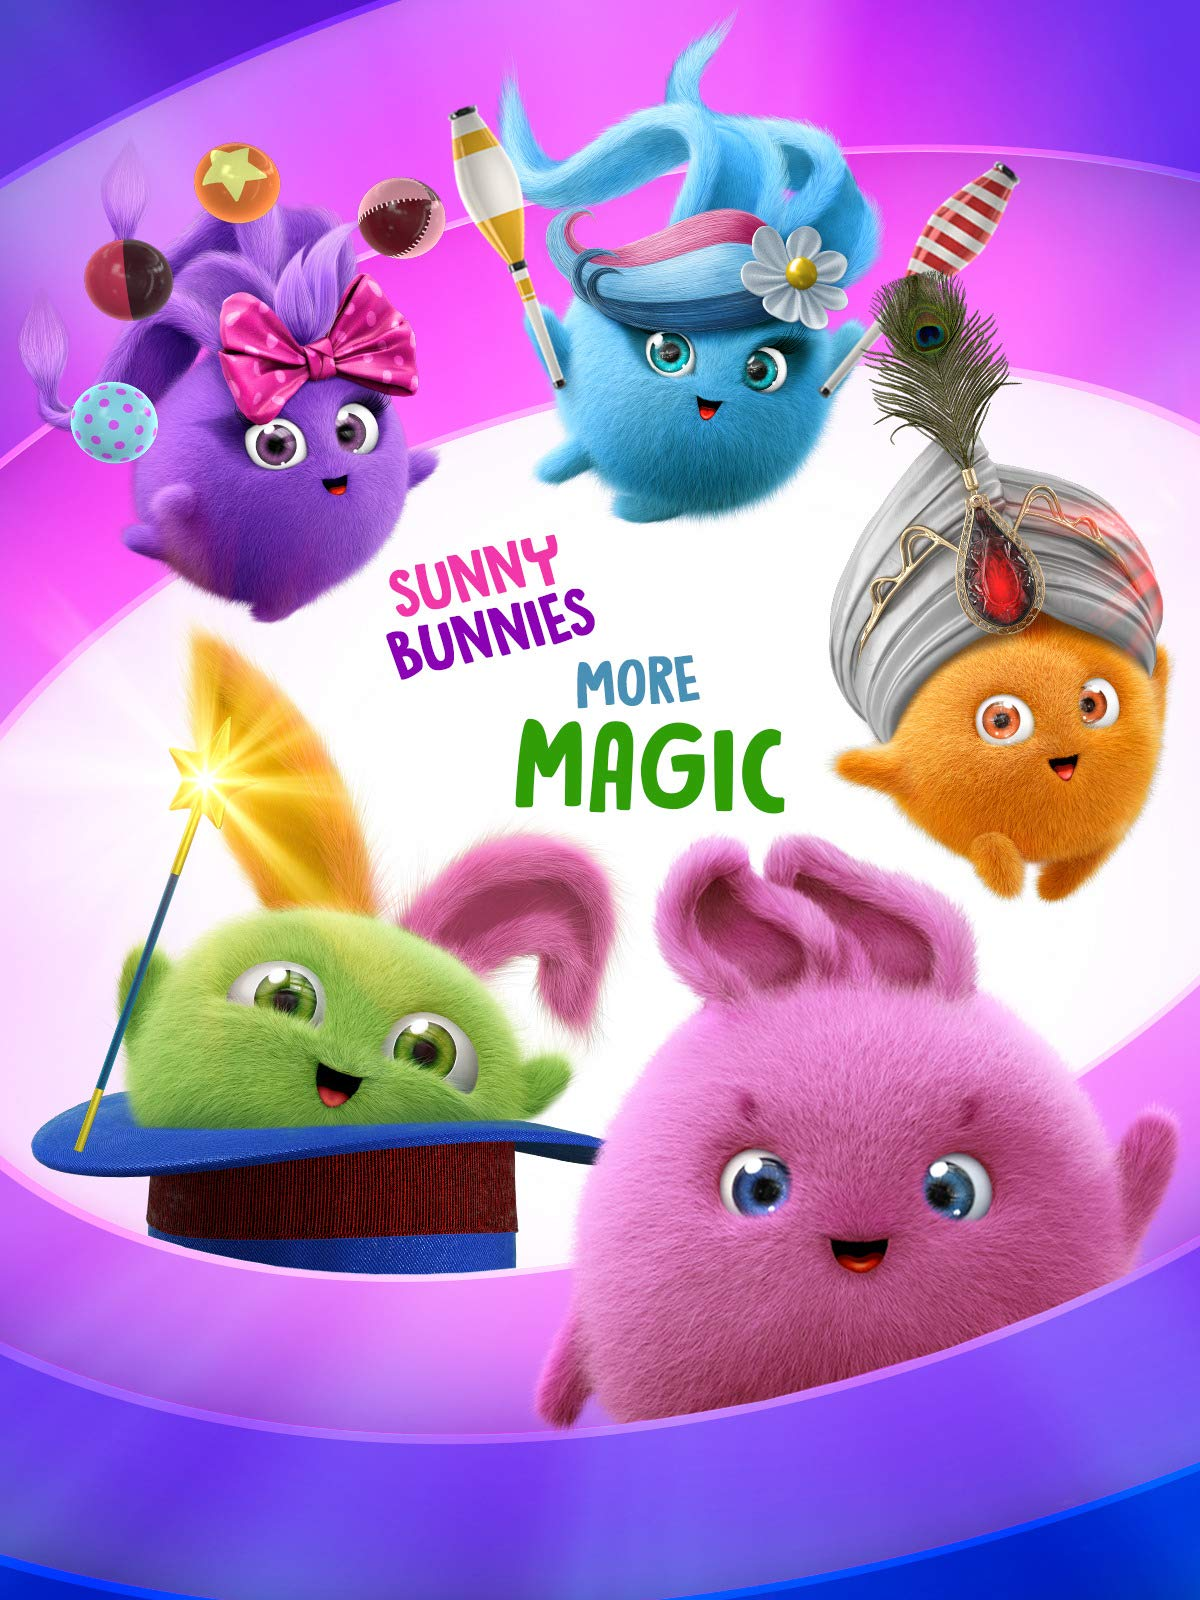 Sunny Bunnies - More Magic on Amazon Prime Instant Video UK